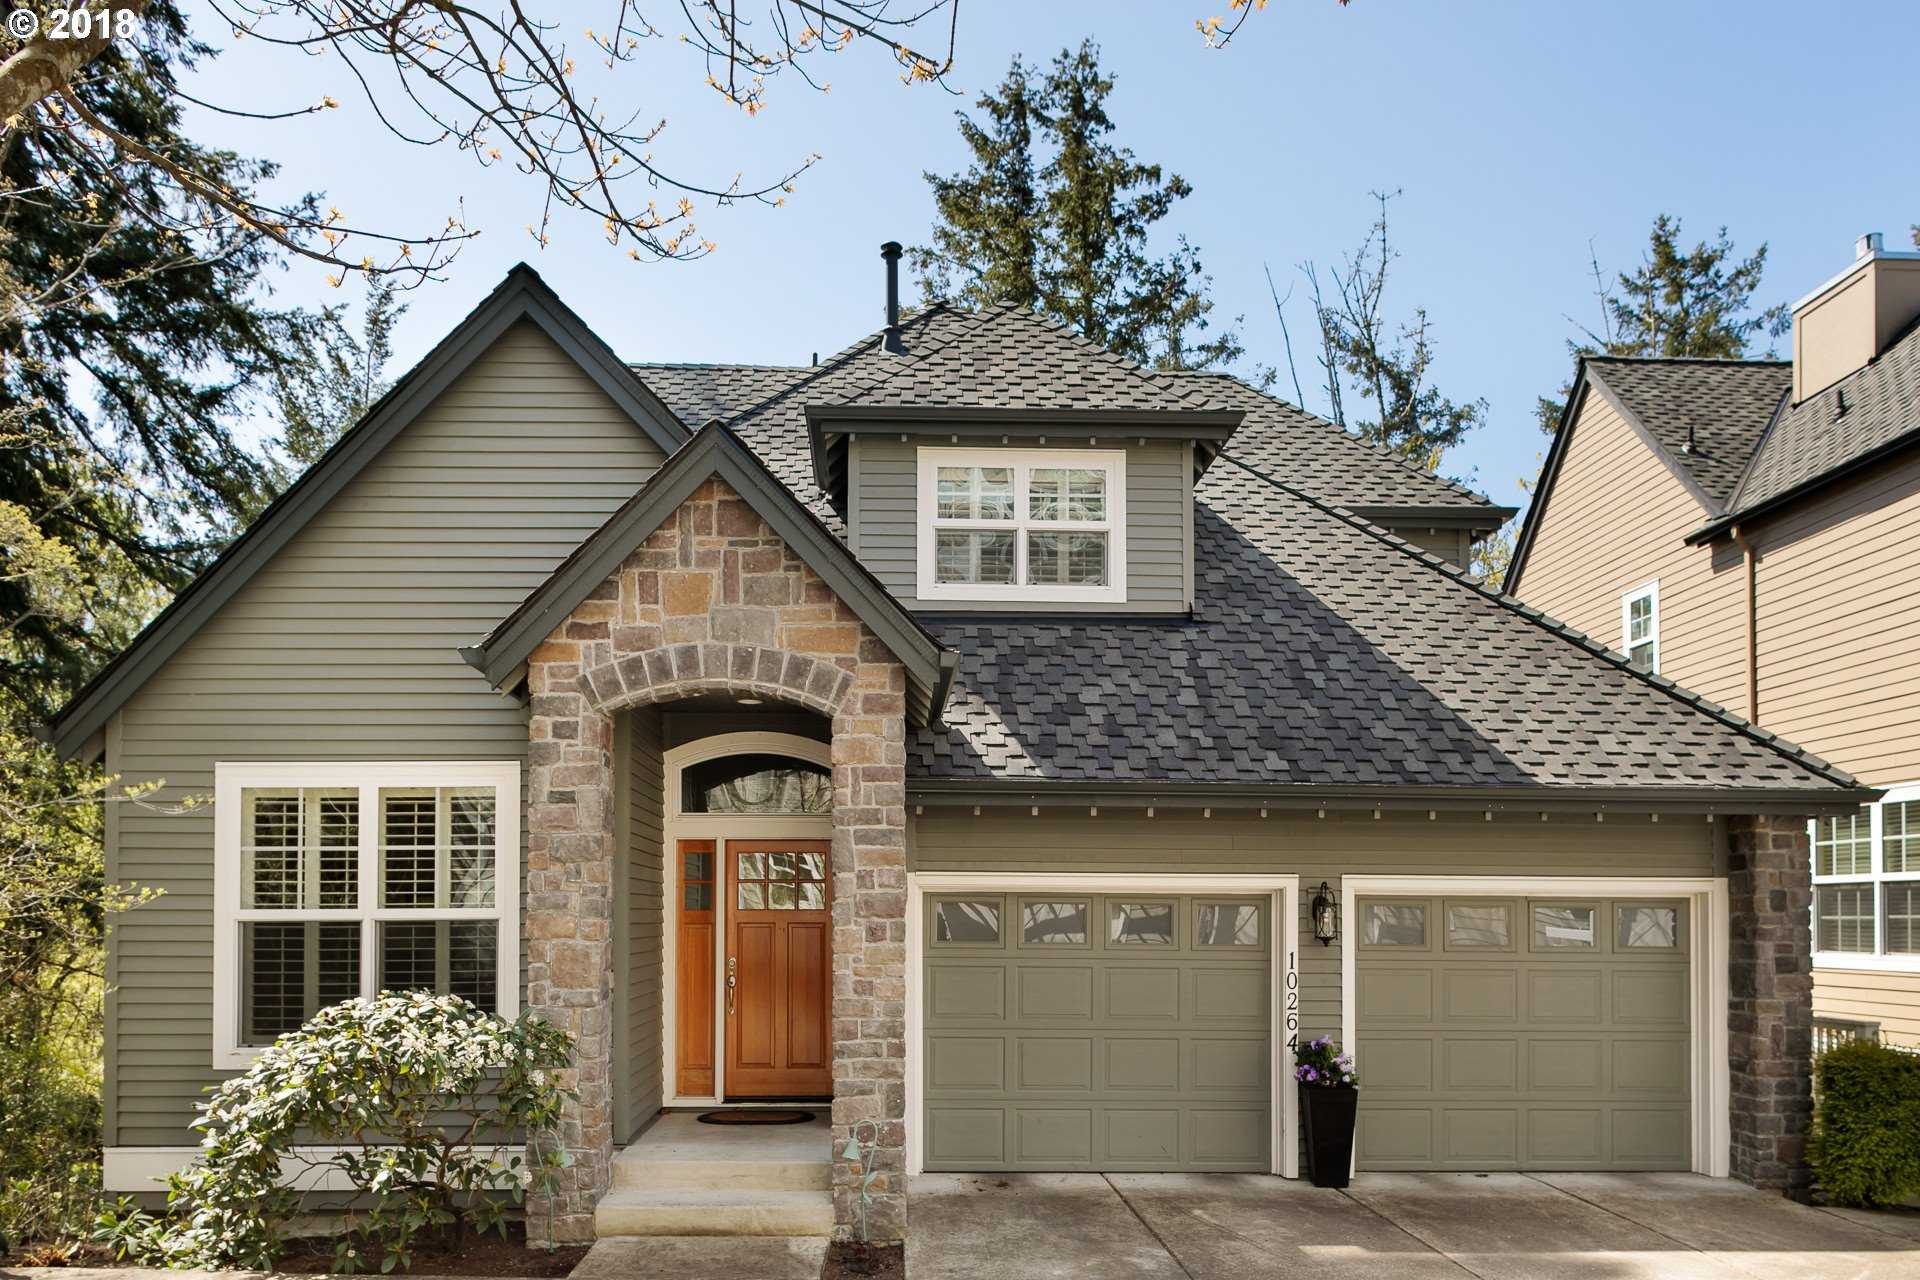 $625,000 - 3Br/3Ba -  for Sale in Forest Heights/edgewood, Portland